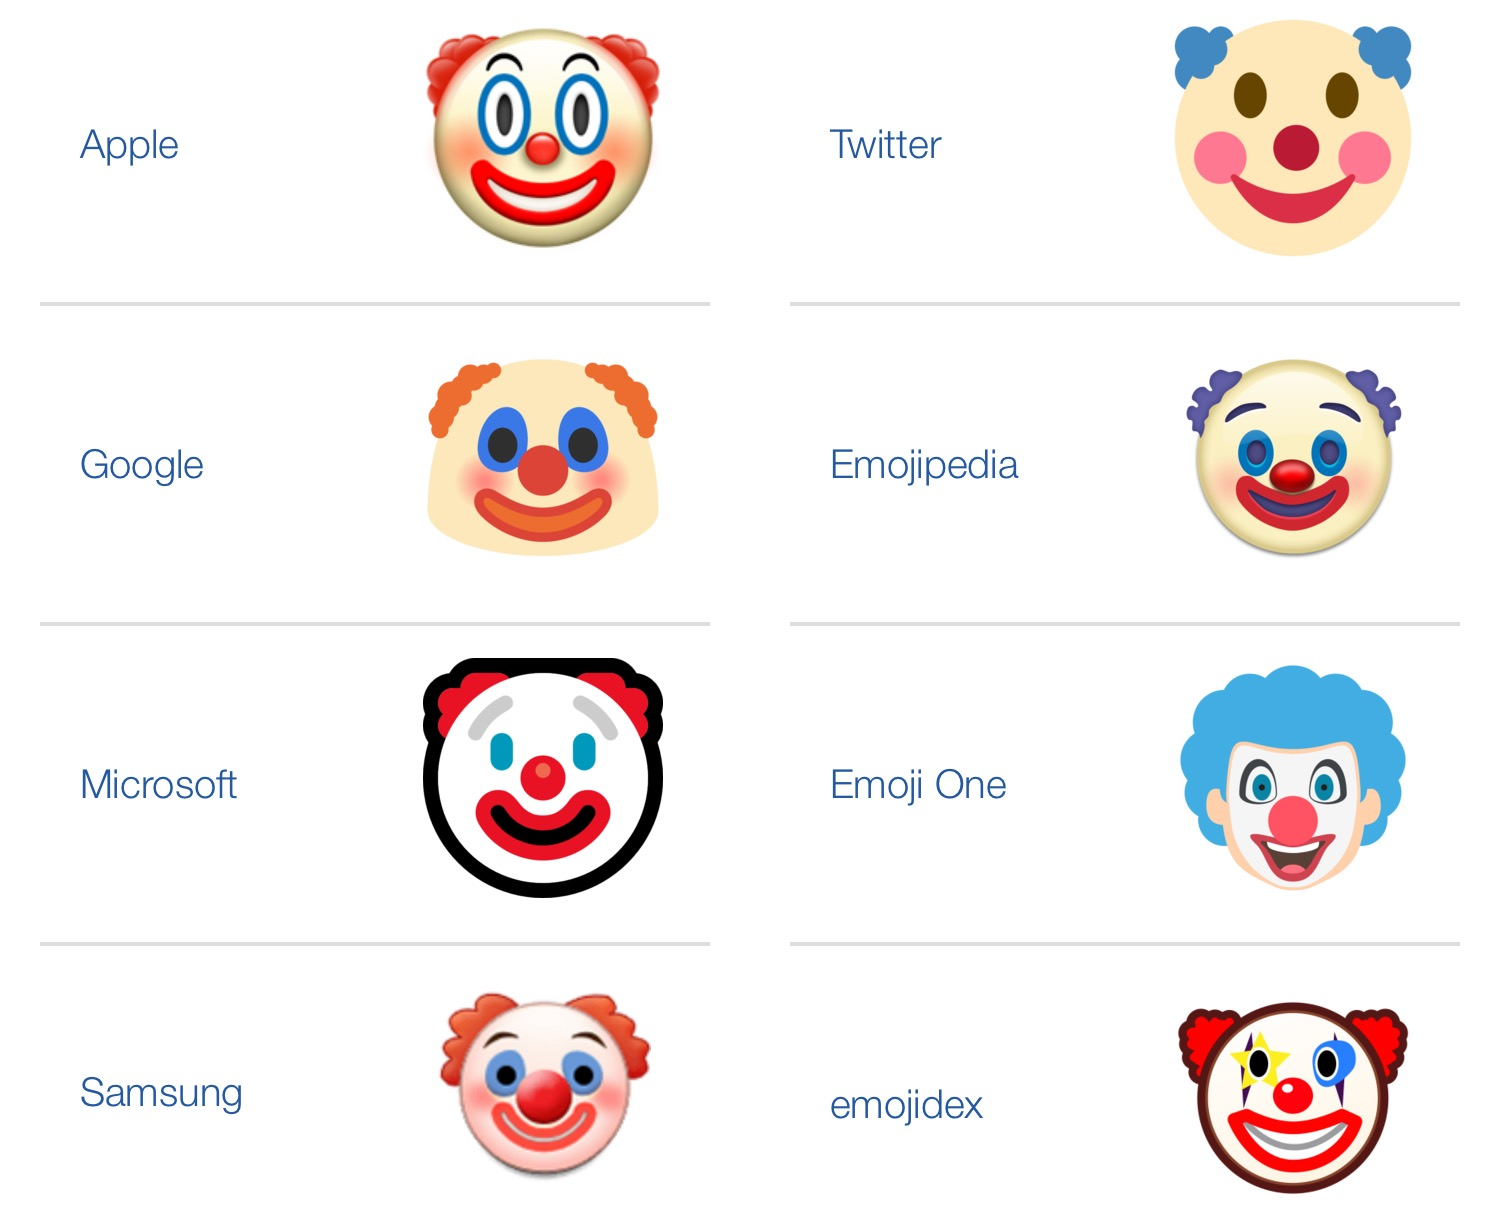 Microsoft emoji list emojistwitter emoji list emojis - So Give Botmoji A Tweet Whenever You Need A Hand With That Missing Emoji And She Ll Get Back To You Right Away